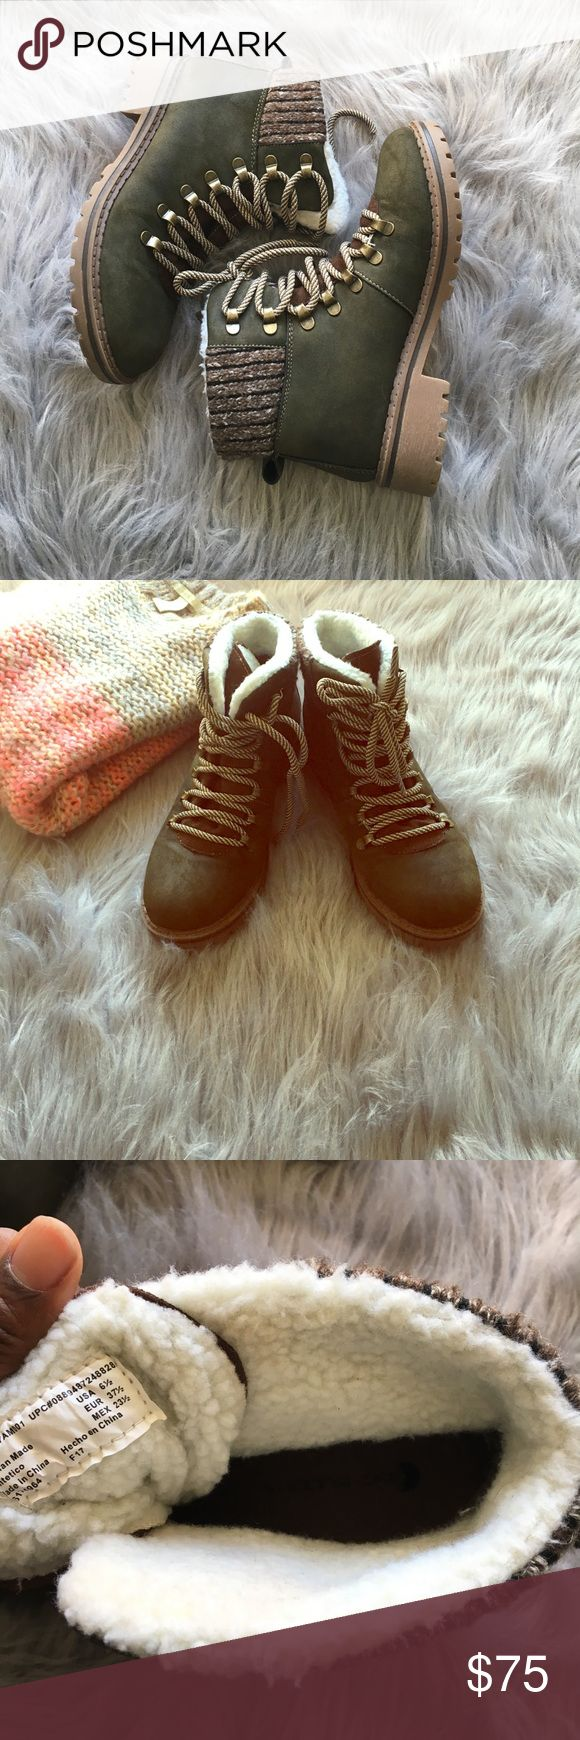 Big Buddha Boots These boots are fabulous they are EUC. Olive green with brass color eyelets on these boots they are 6.5 size Big Buddha Shoes Ankle Boots & Booties